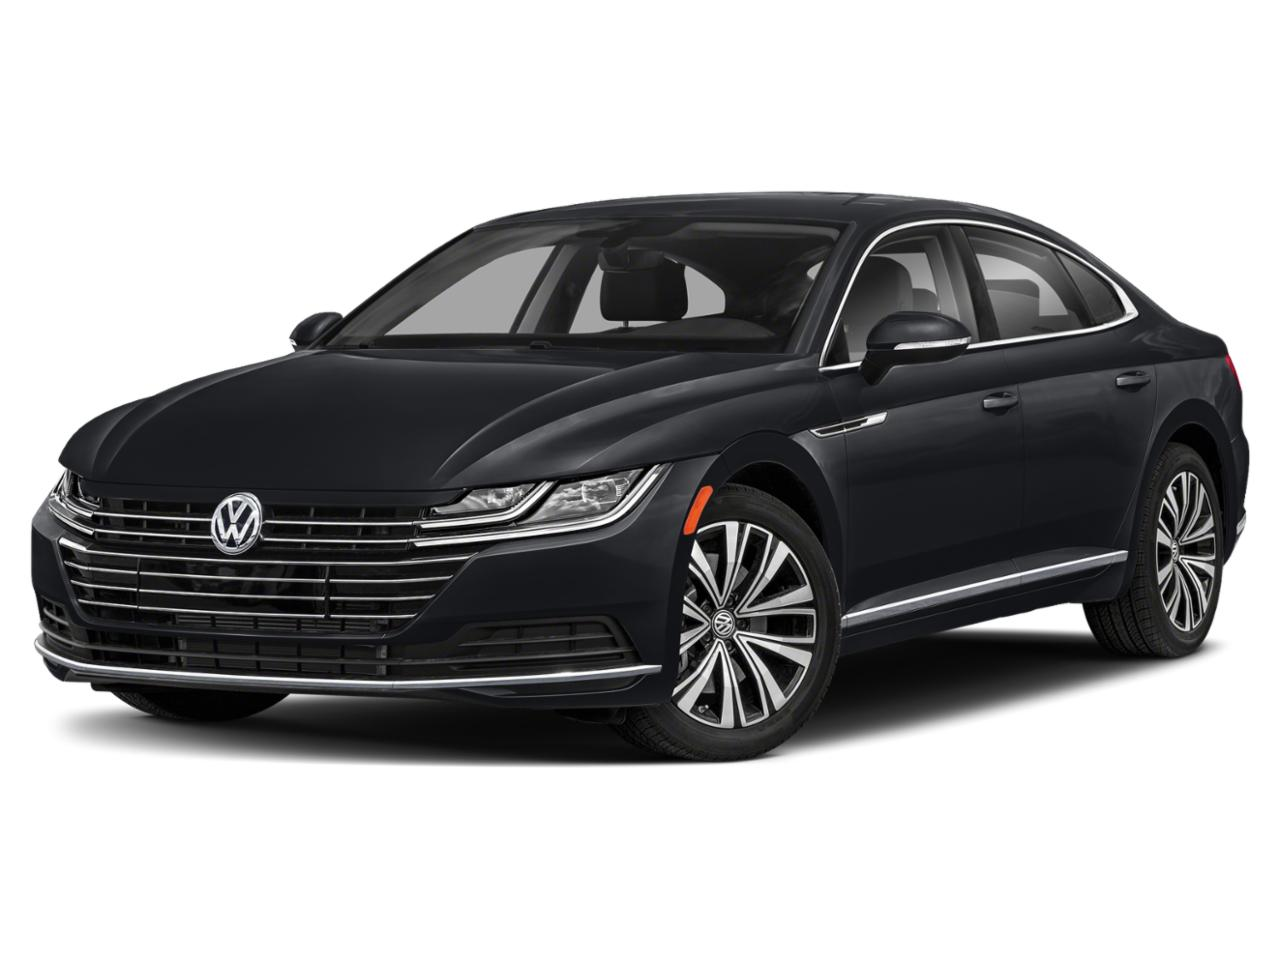 2019 Volkswagen Arteon Vehicle Photo in Joliet, IL 60586